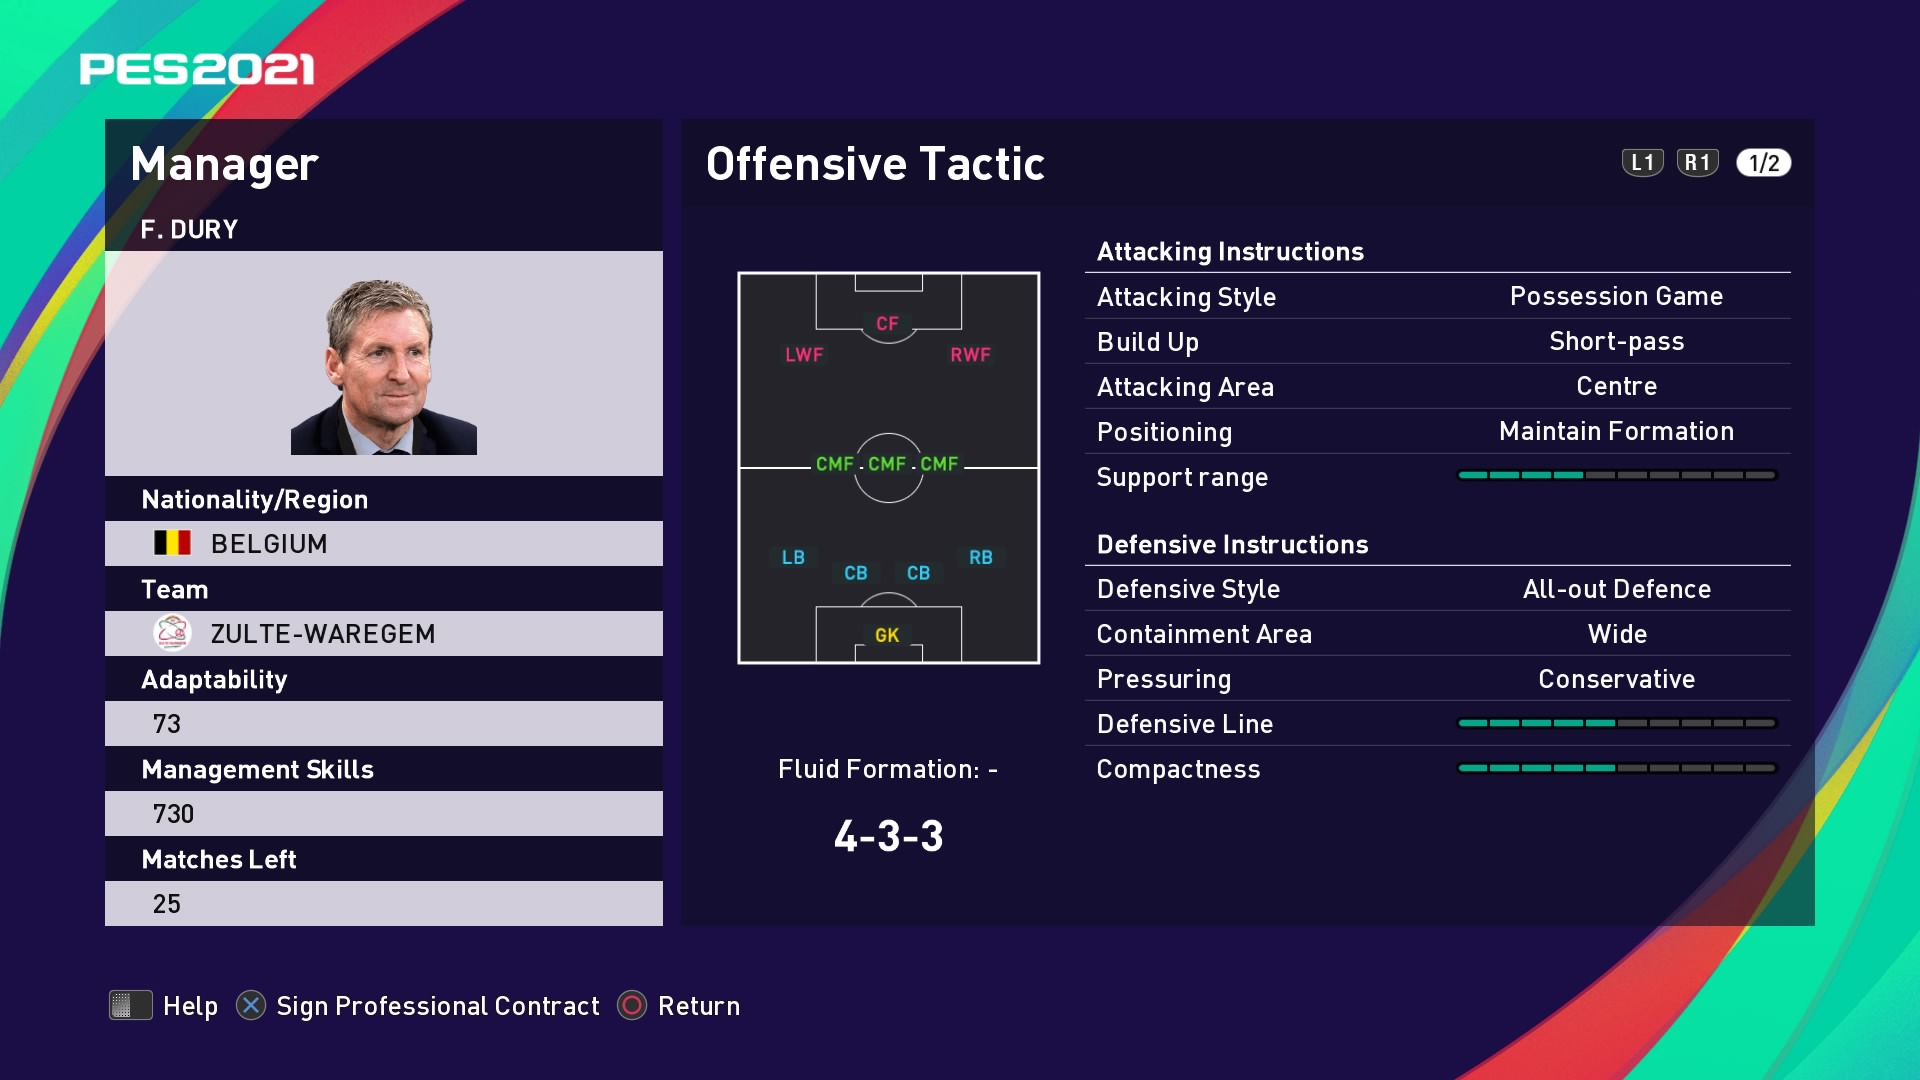 F. Dury (Francky Dury) Offensive Tactic in PES 2021 myClub